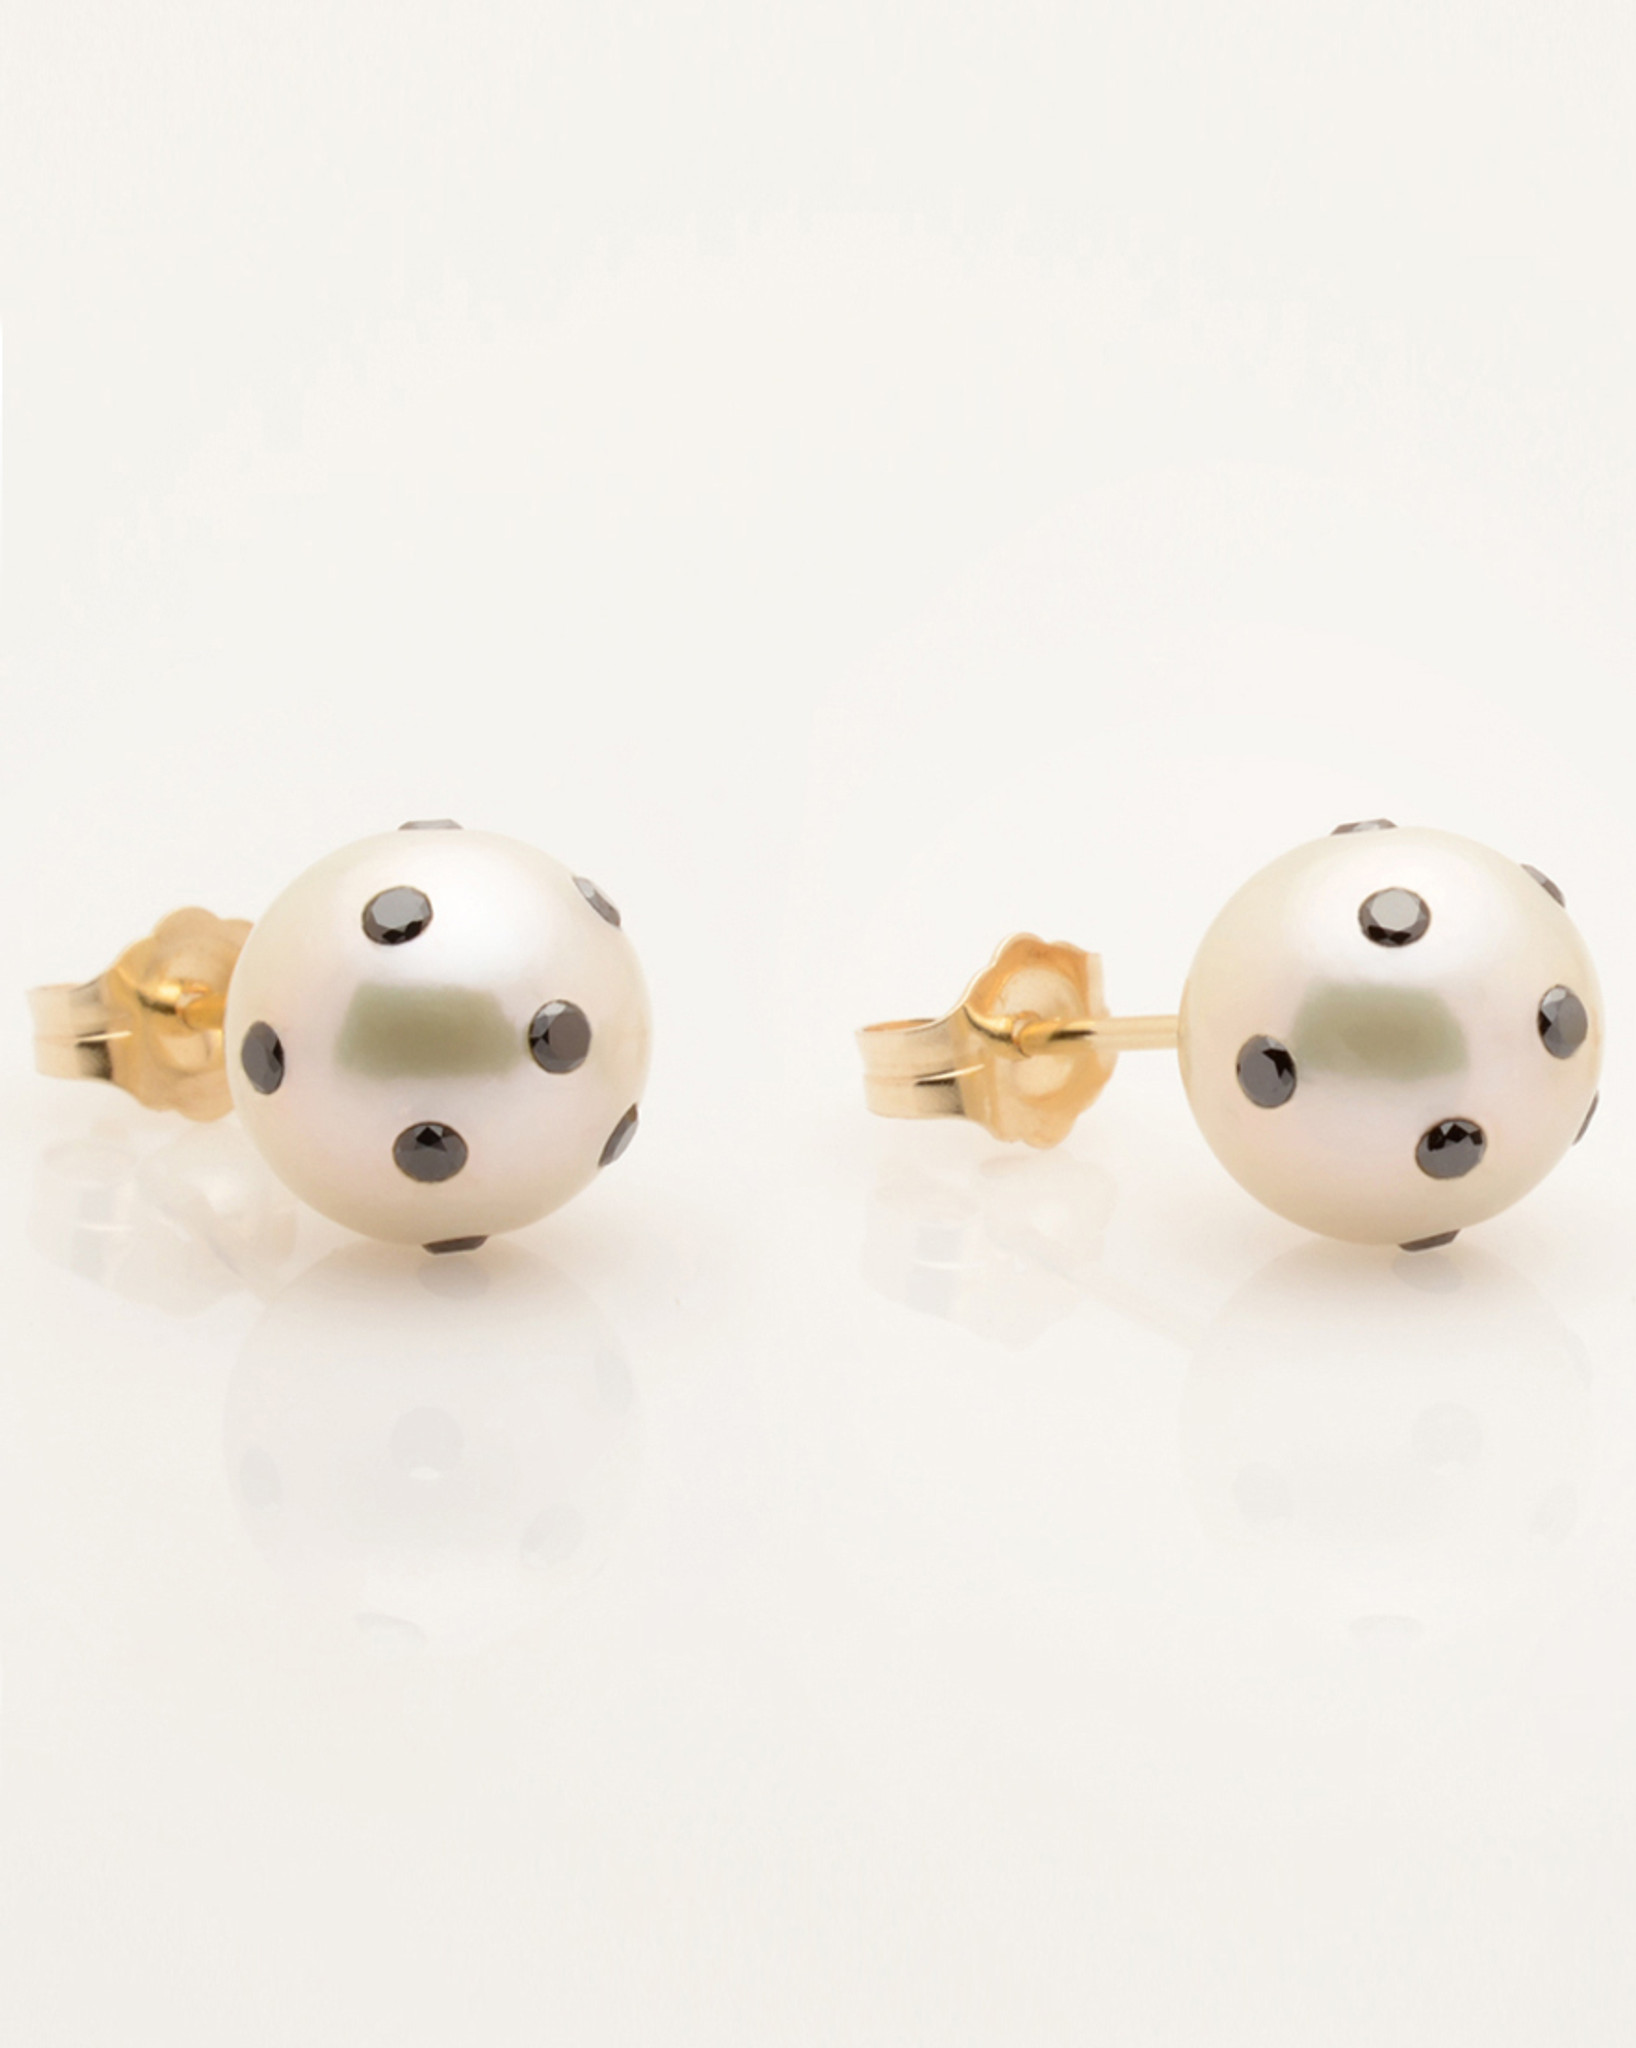 Cultured Freshwater Double White and Black Pearl Earrings with LadyBug Diamond Pave and 14k Gold Posts by Jewelry Designer Nektar De Stagni (8-9mm)